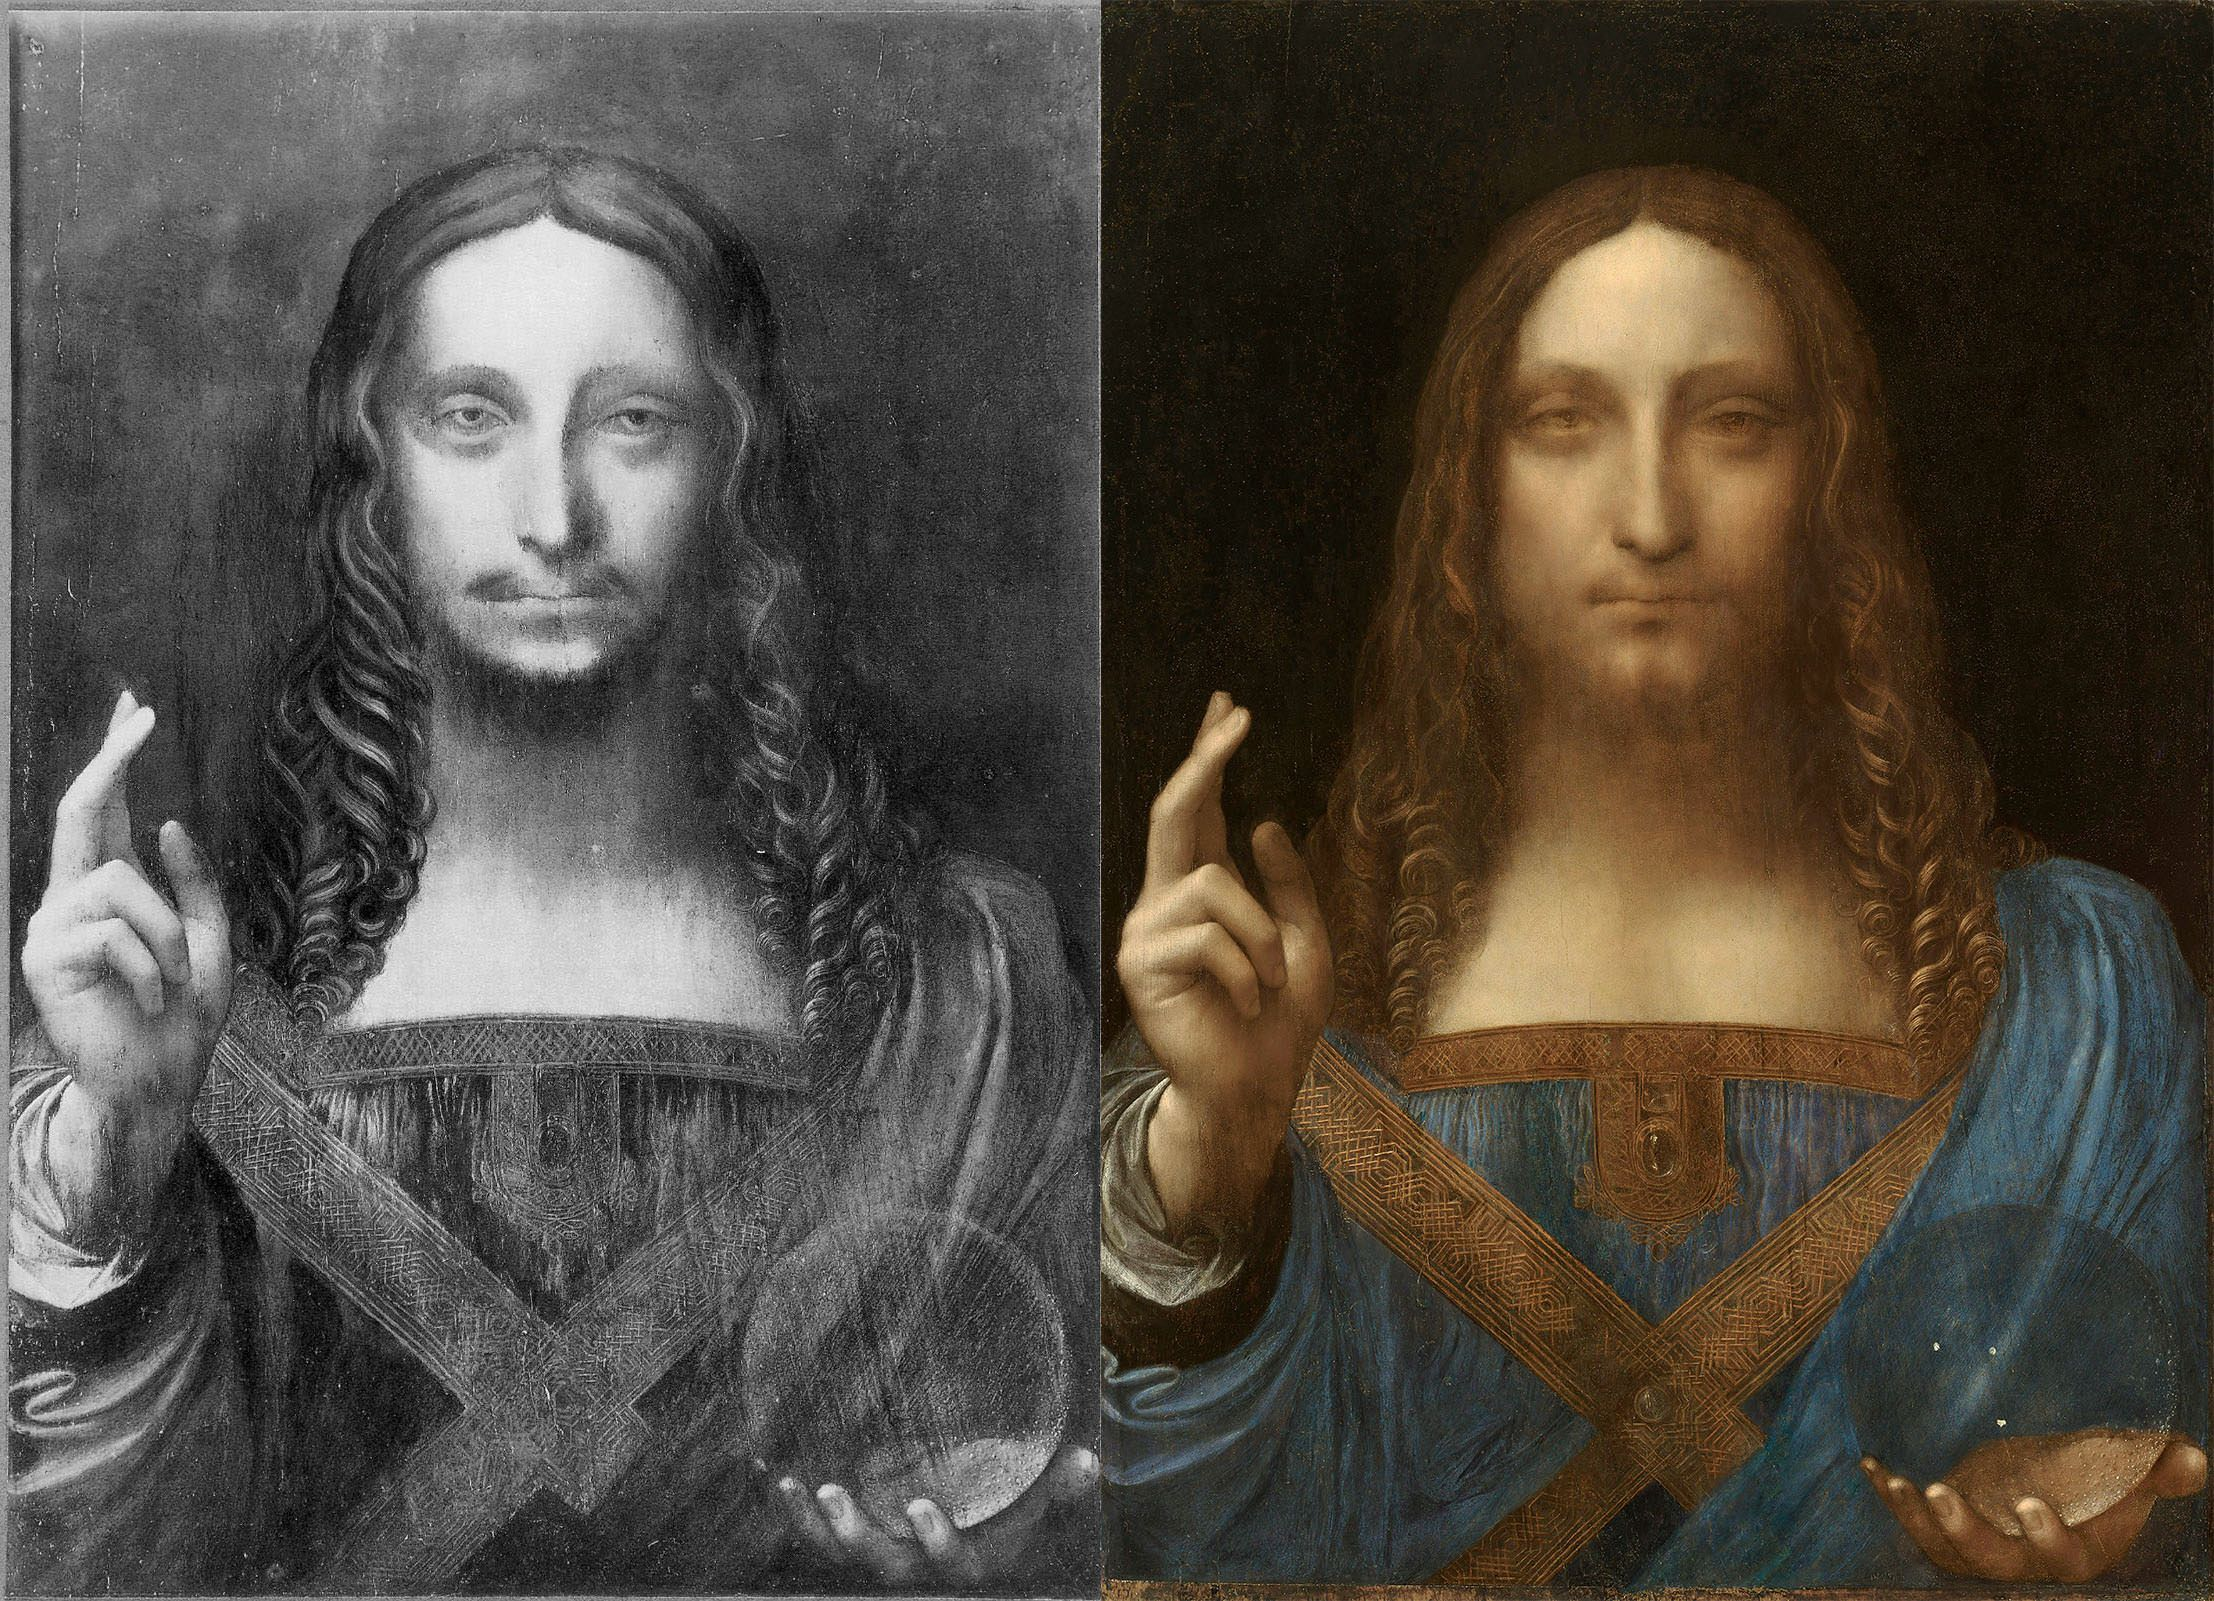 da vinci s salvator mundi that just sold for 450m is a bad